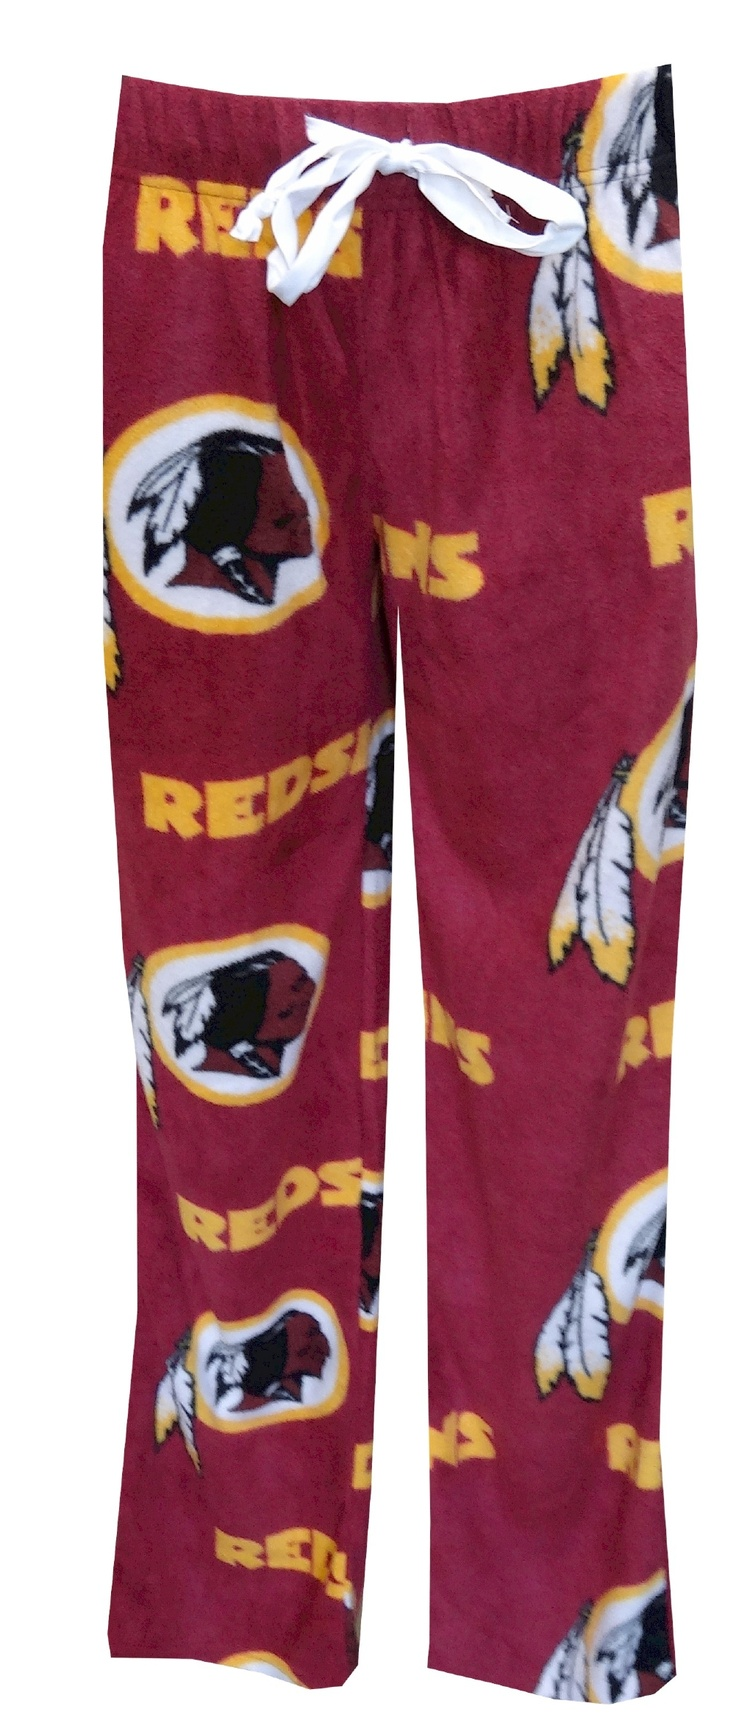 72 best washington redskins images on pinterest washington